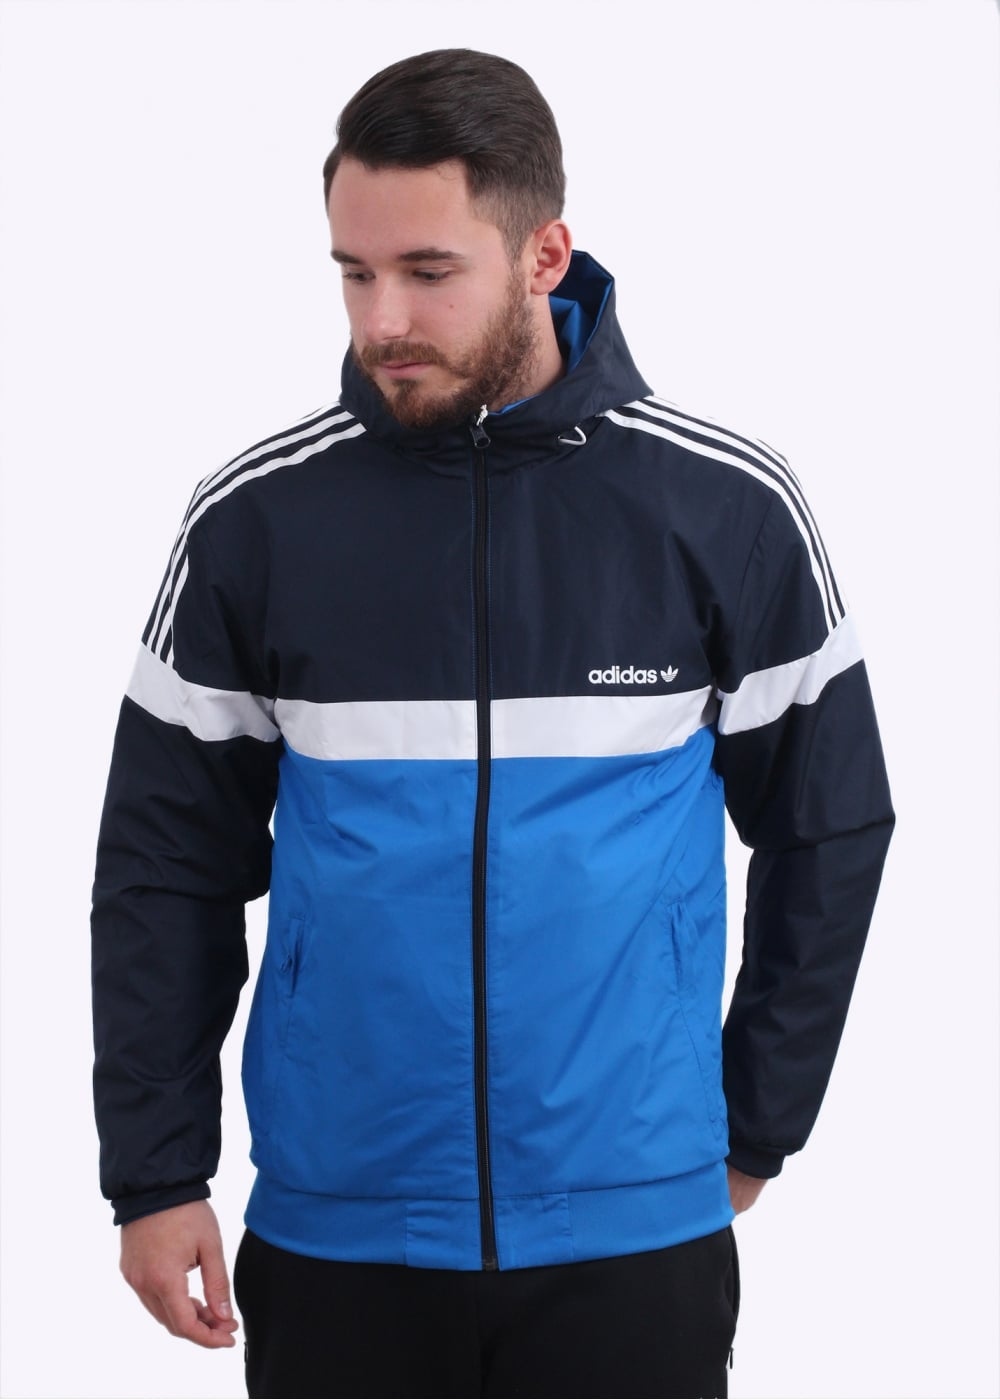 9bdf1024c4ae adidas Originals Apparel Reversible Windbreaker Jacket - Legend Ink ...